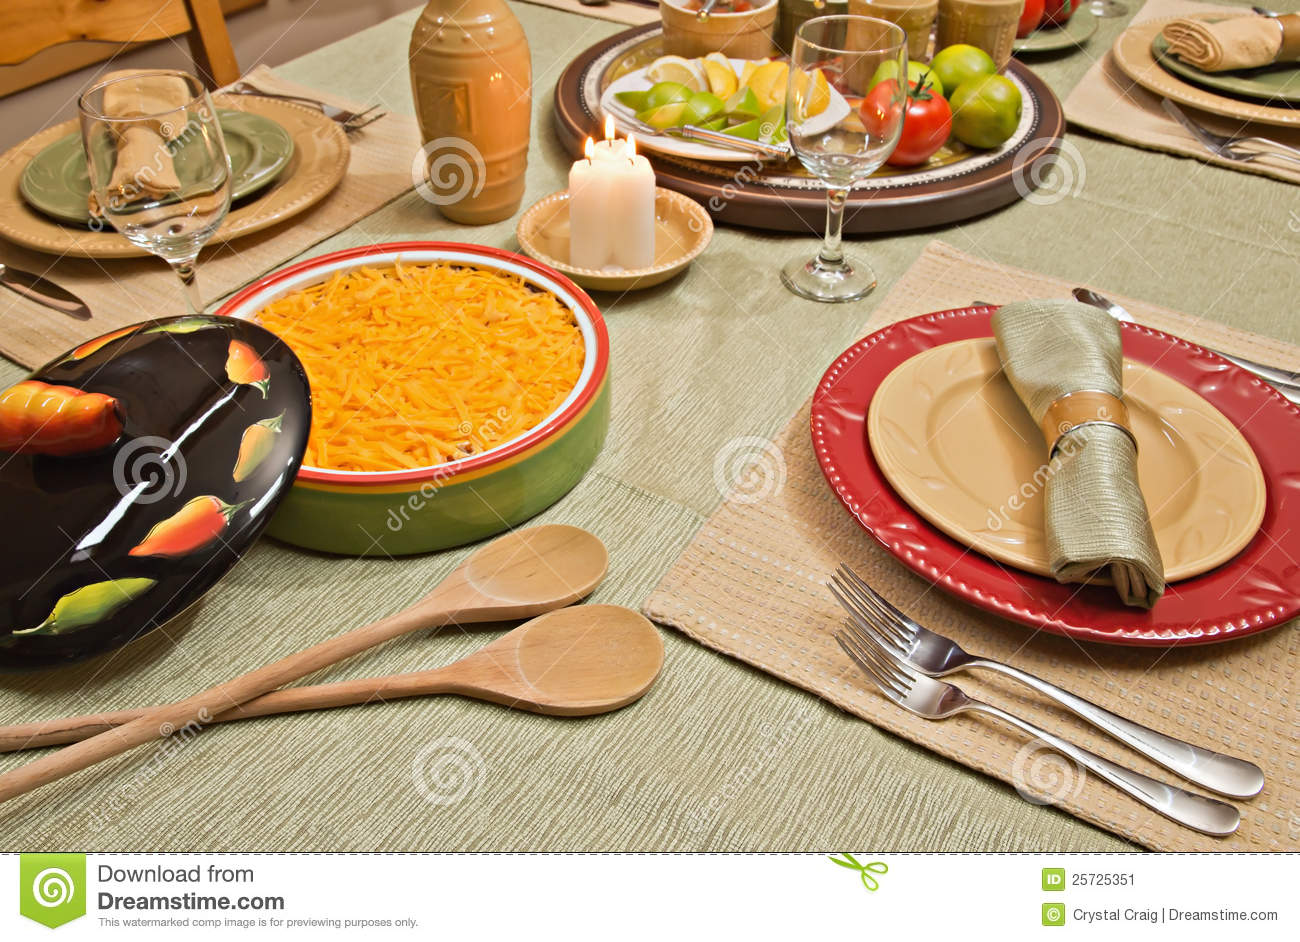 How To Set A Dinner Table dinner table set for mexican food stock image - image: 25725351